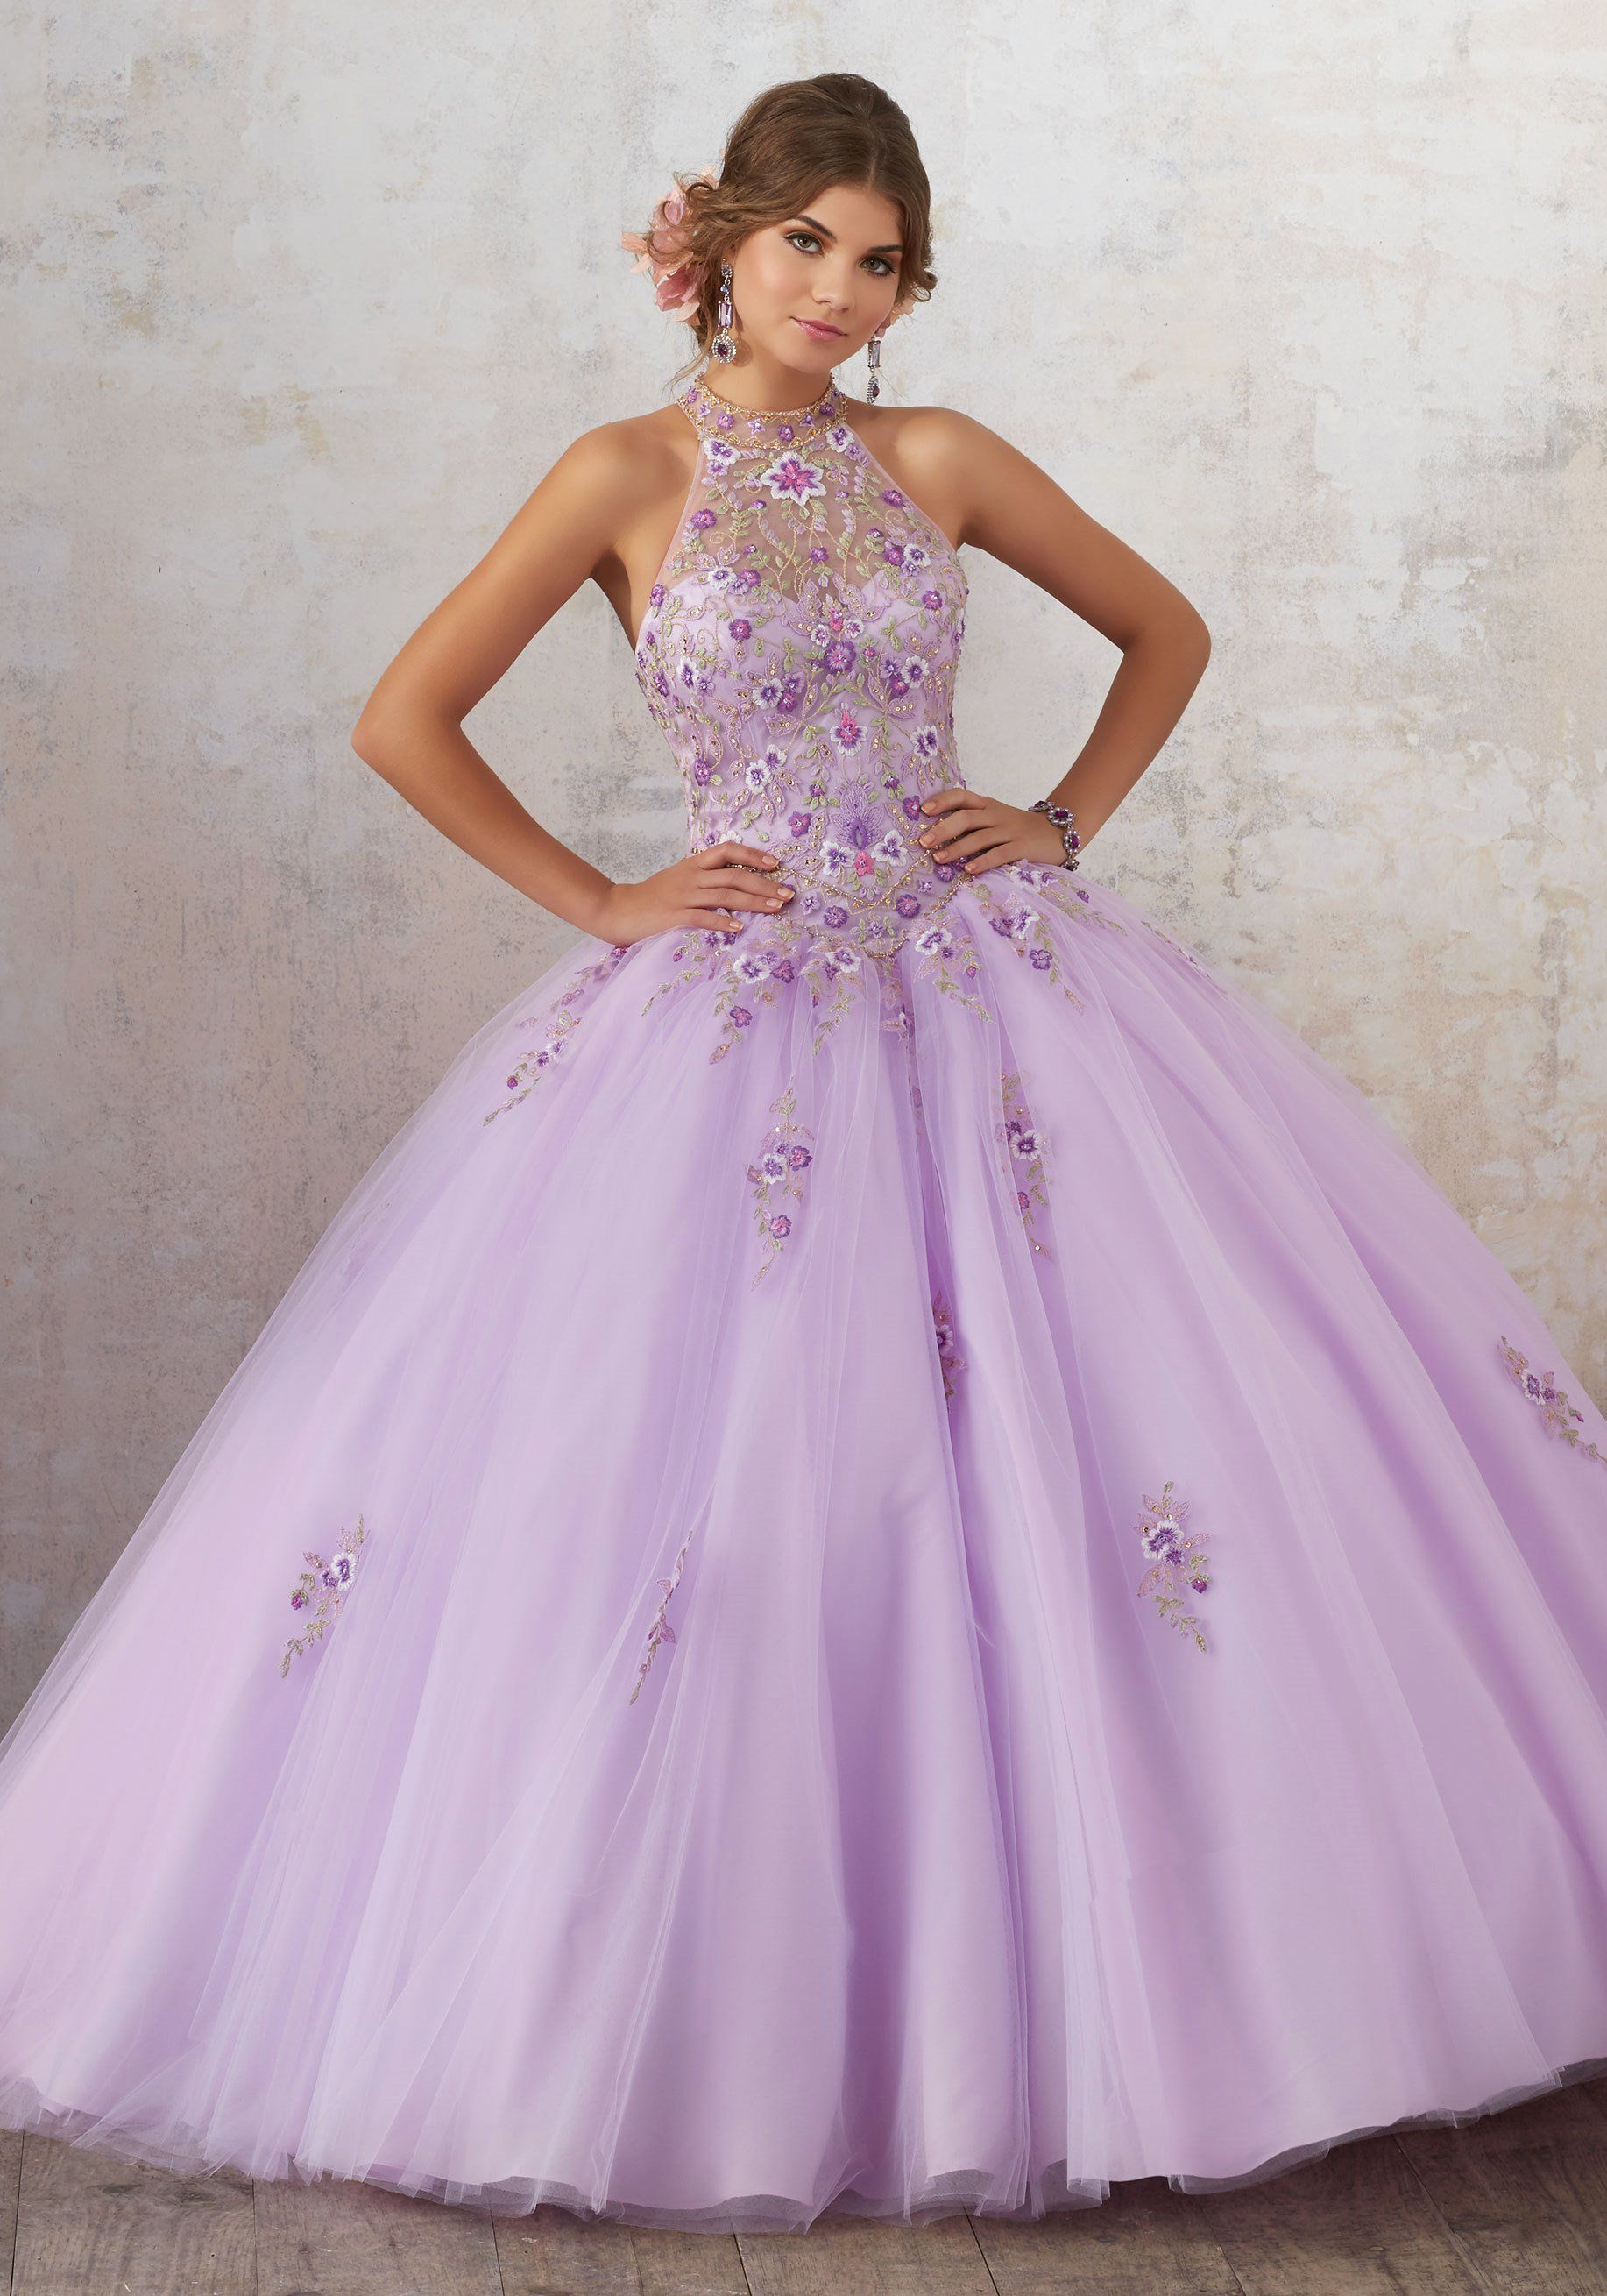 27258913746 High Neck Floral Quinceanera Dress by Mori Lee Vizcaya 89134 in 2019 ...